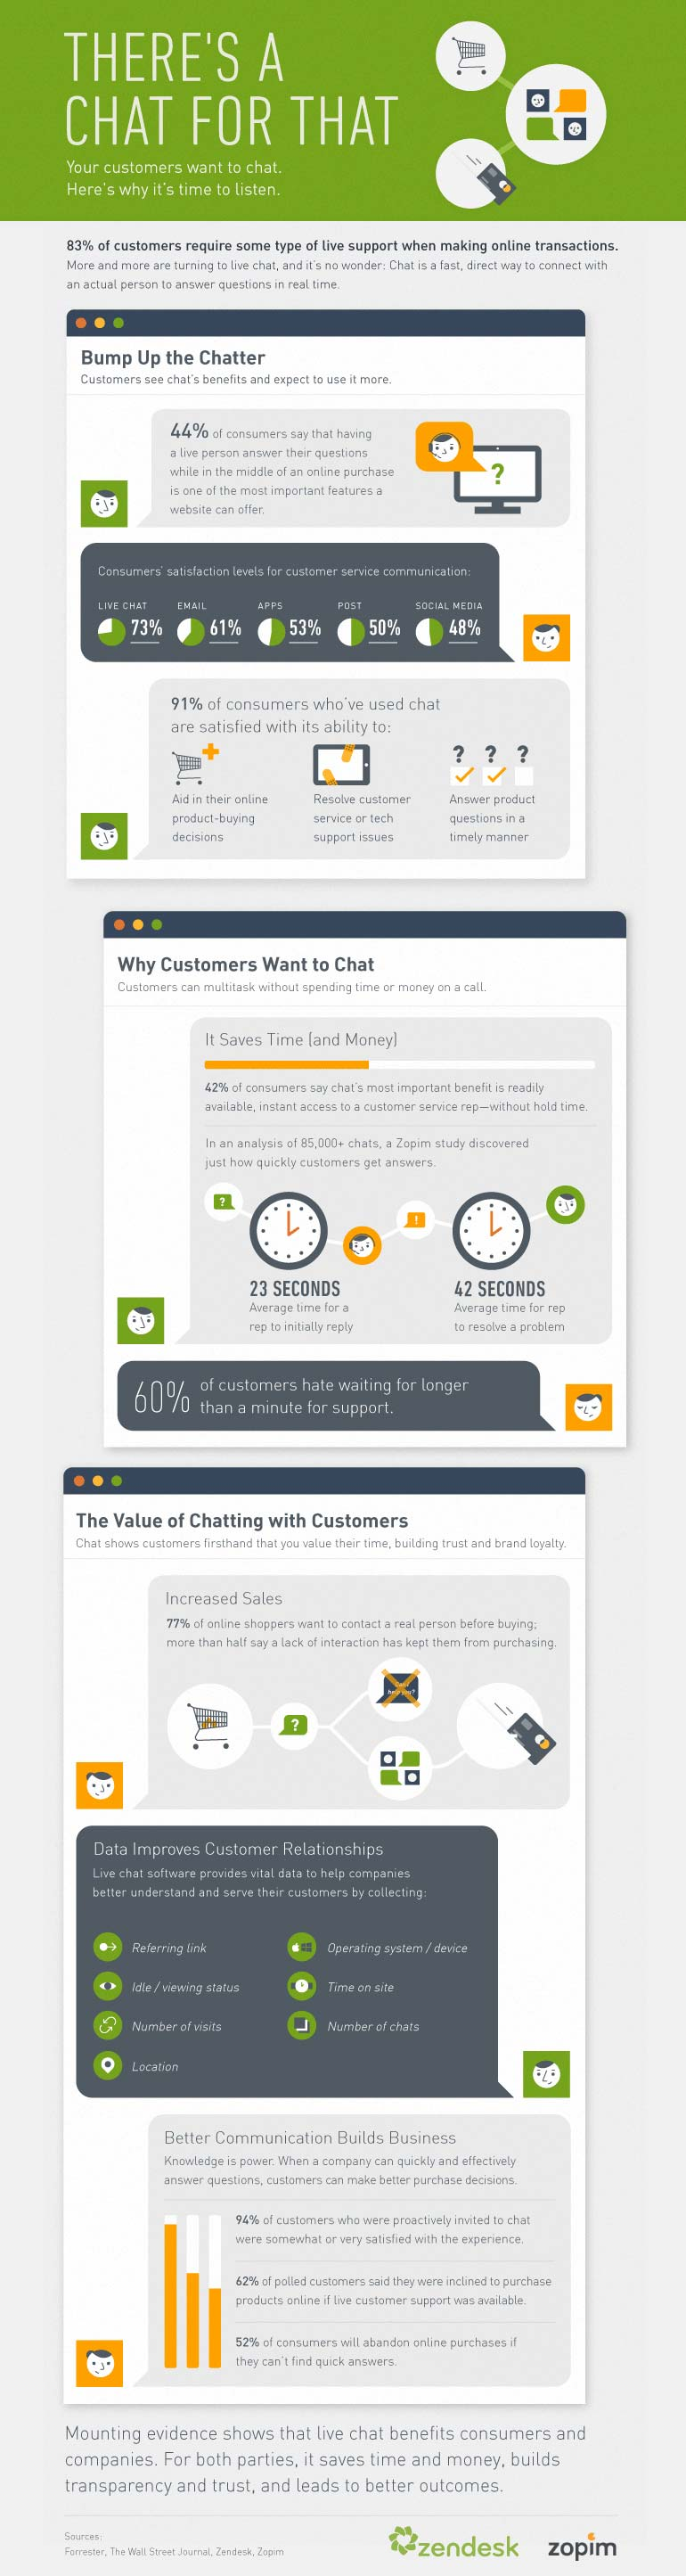 Infographic About the Benefits of Having a Live Chat